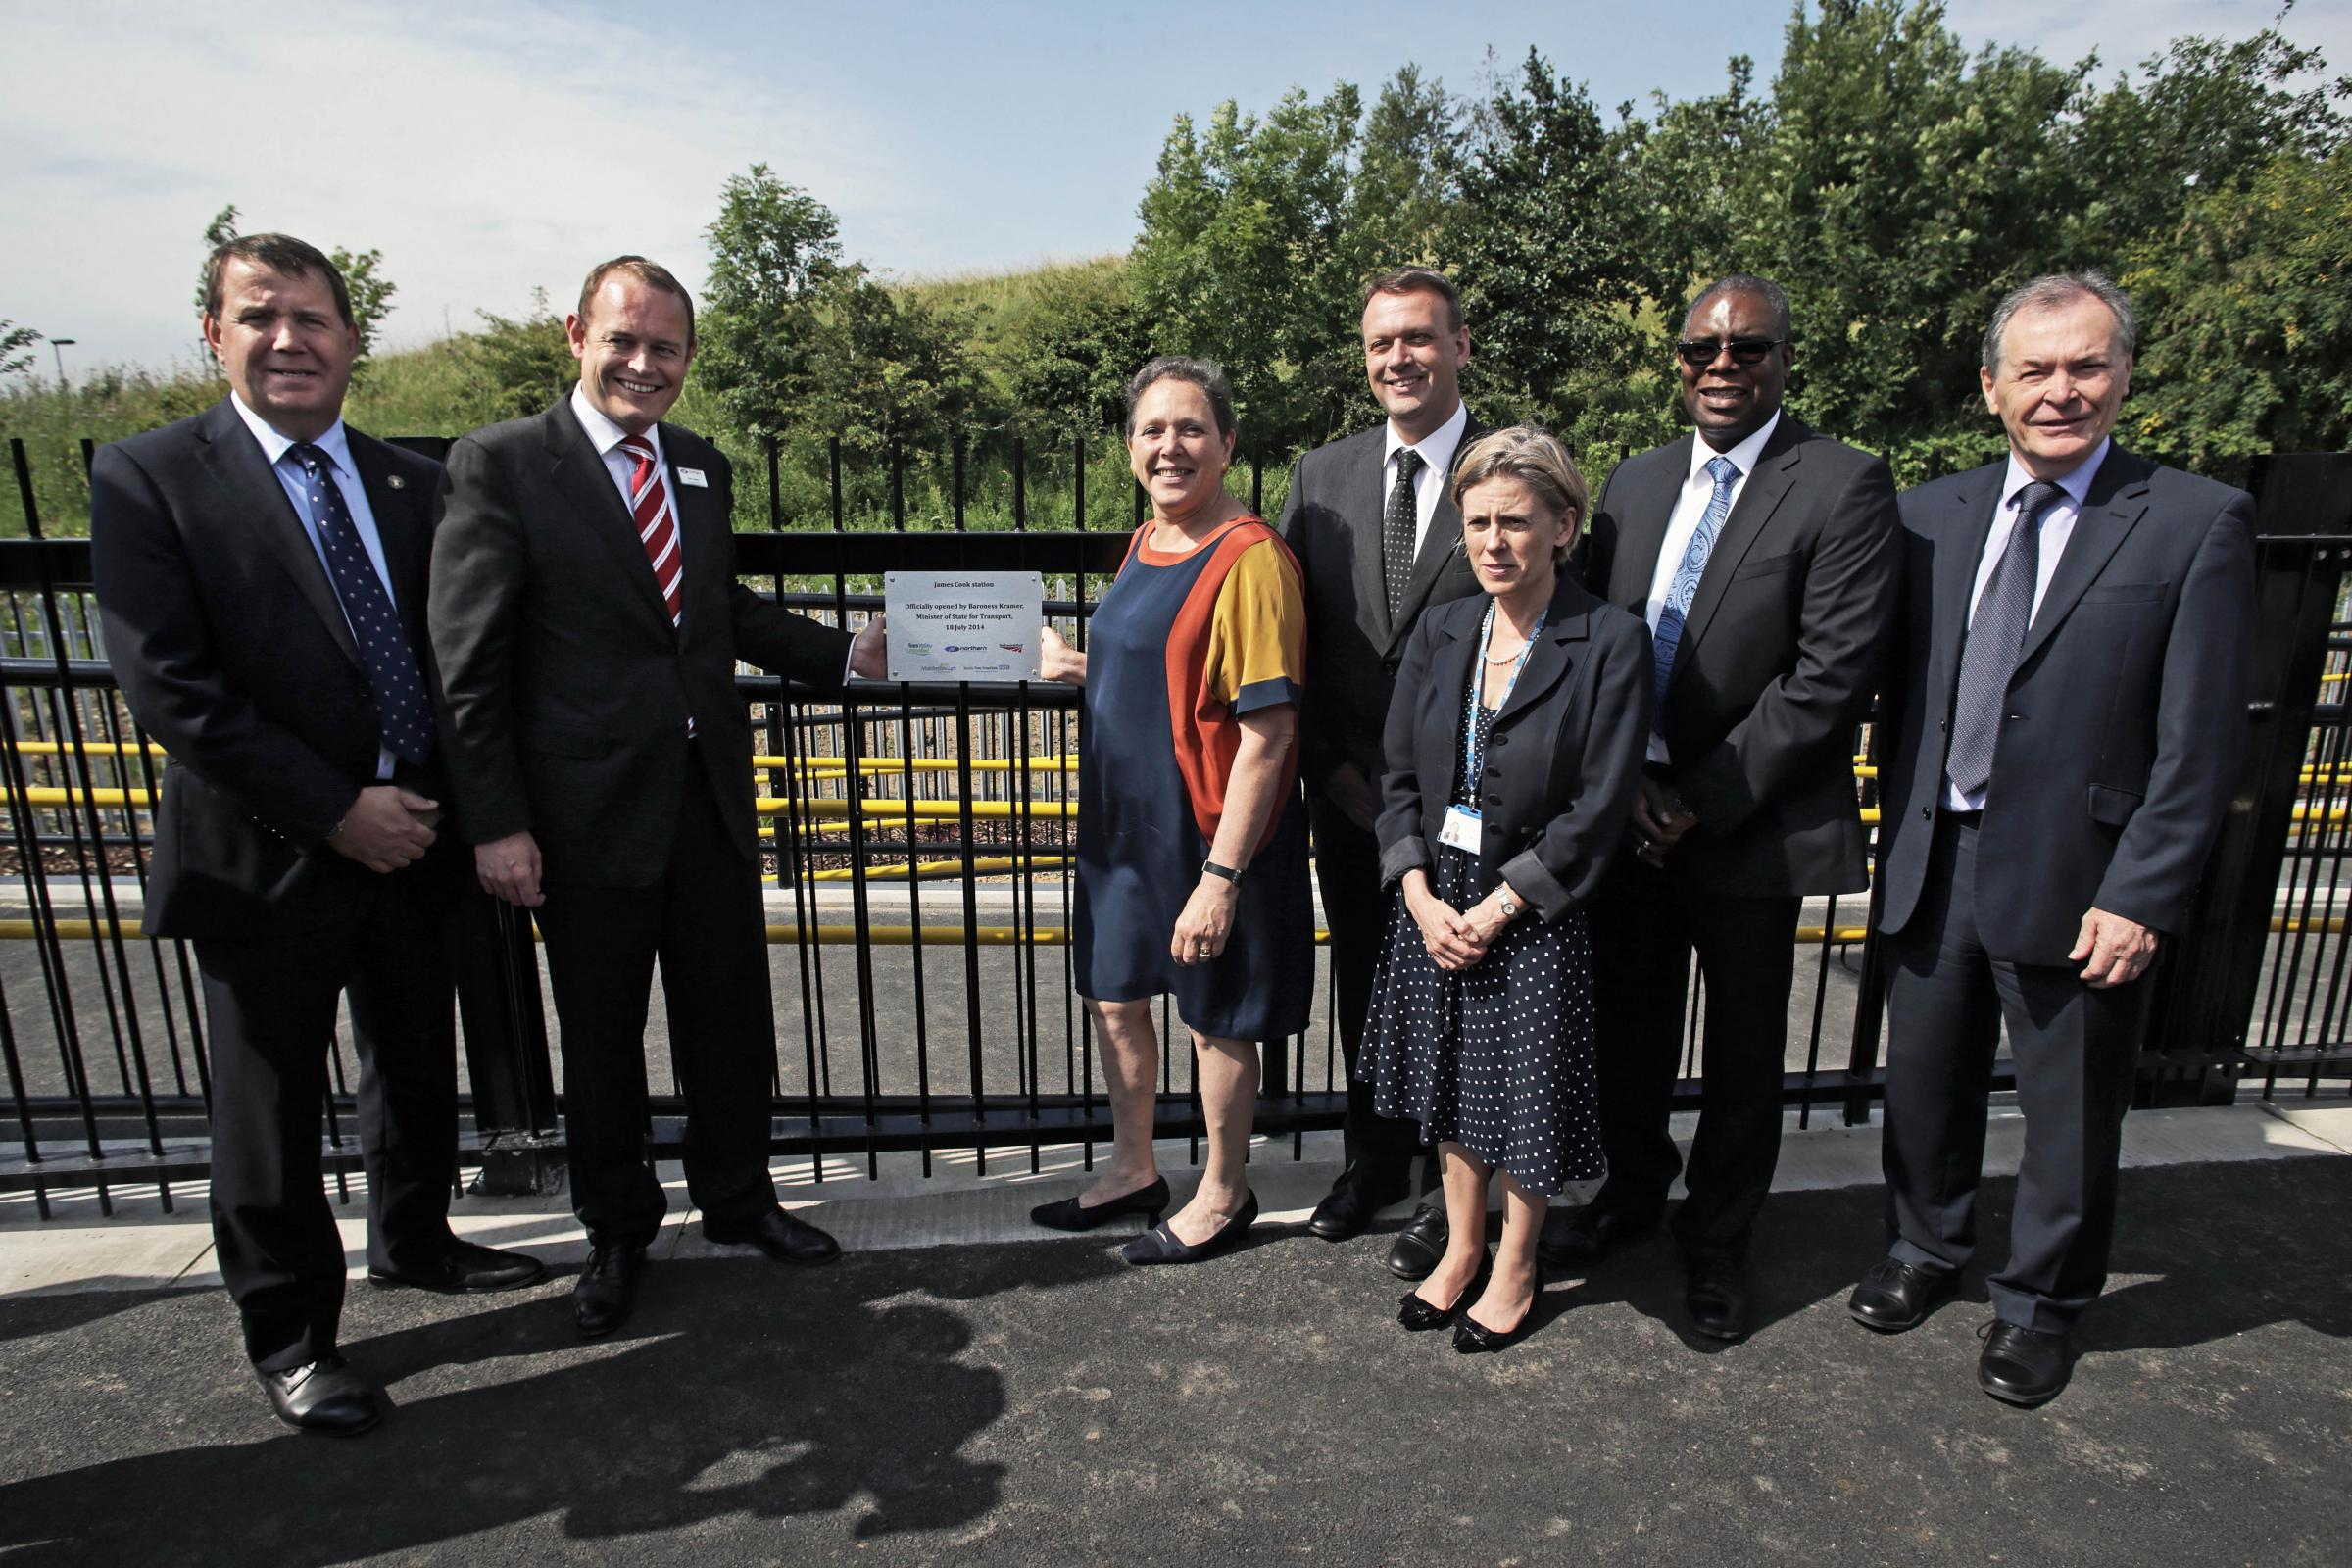 At the official opening of the James Cook station at James Cook University Hospital in Middlesbrough by Transport Minister Baroness Kramer. L-R David Robinson, TVU board